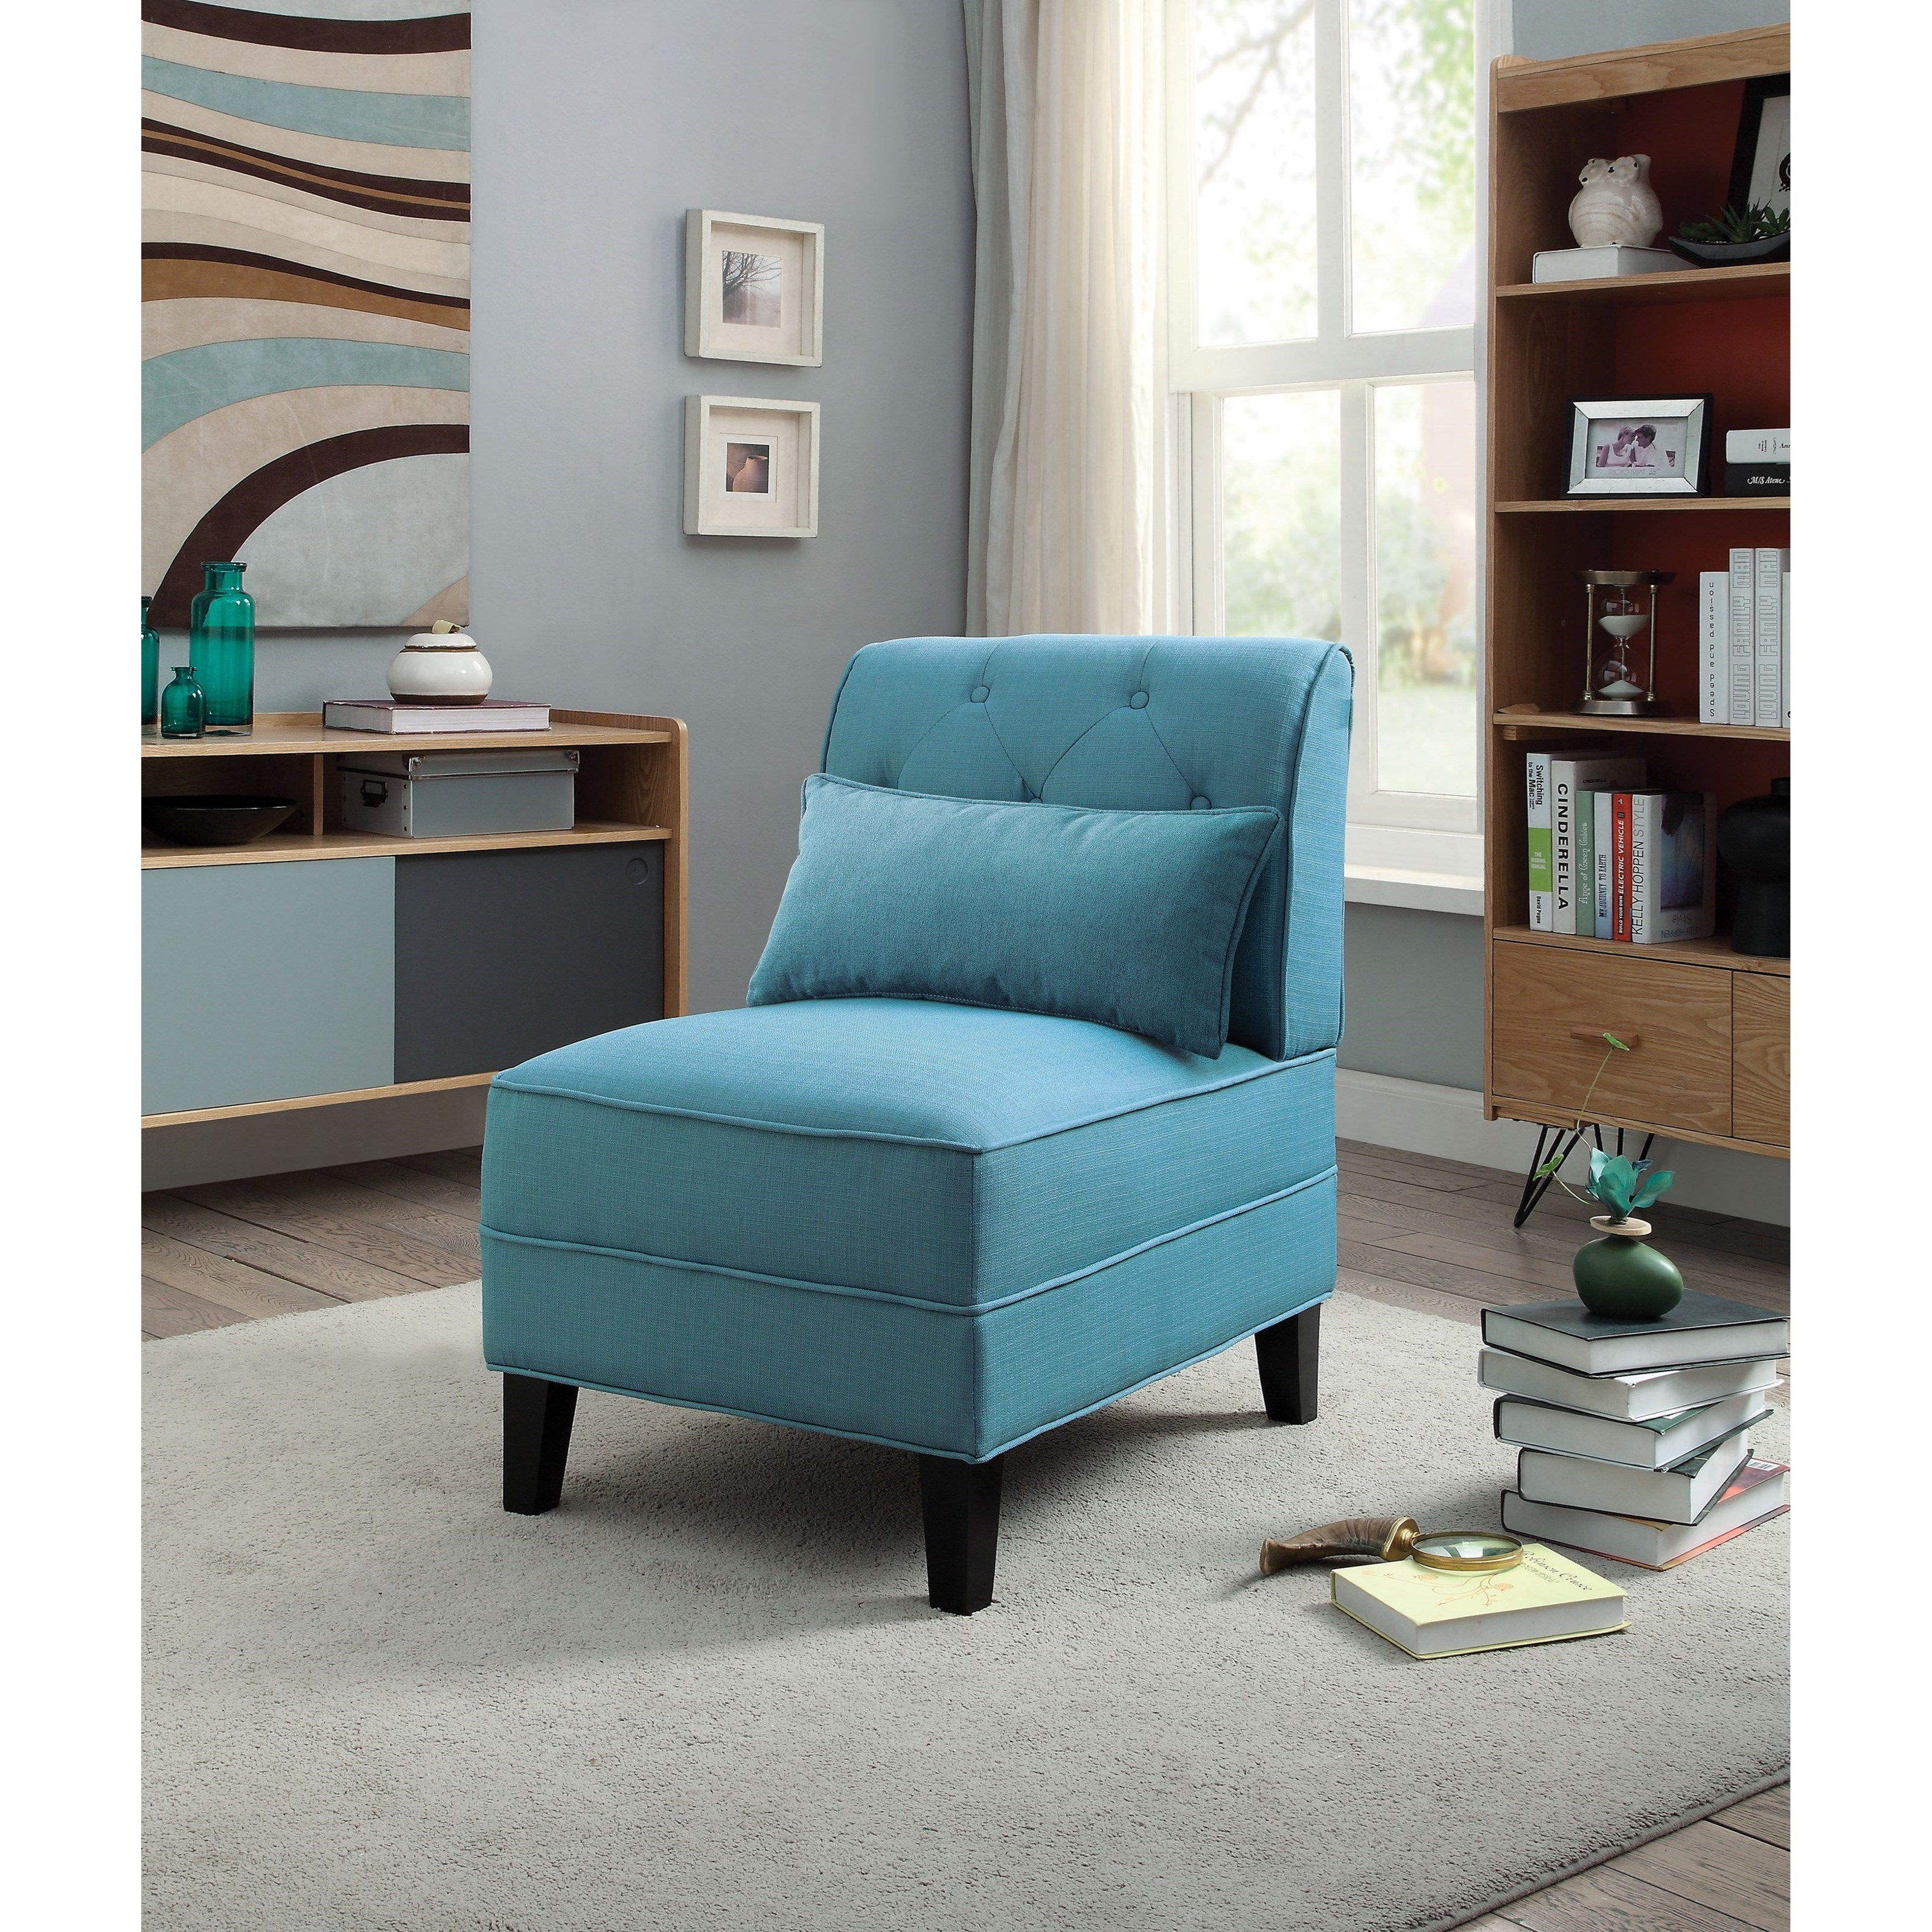 Susanna Upholstered Accent Chair by Acme Furniture at Carolina Direct